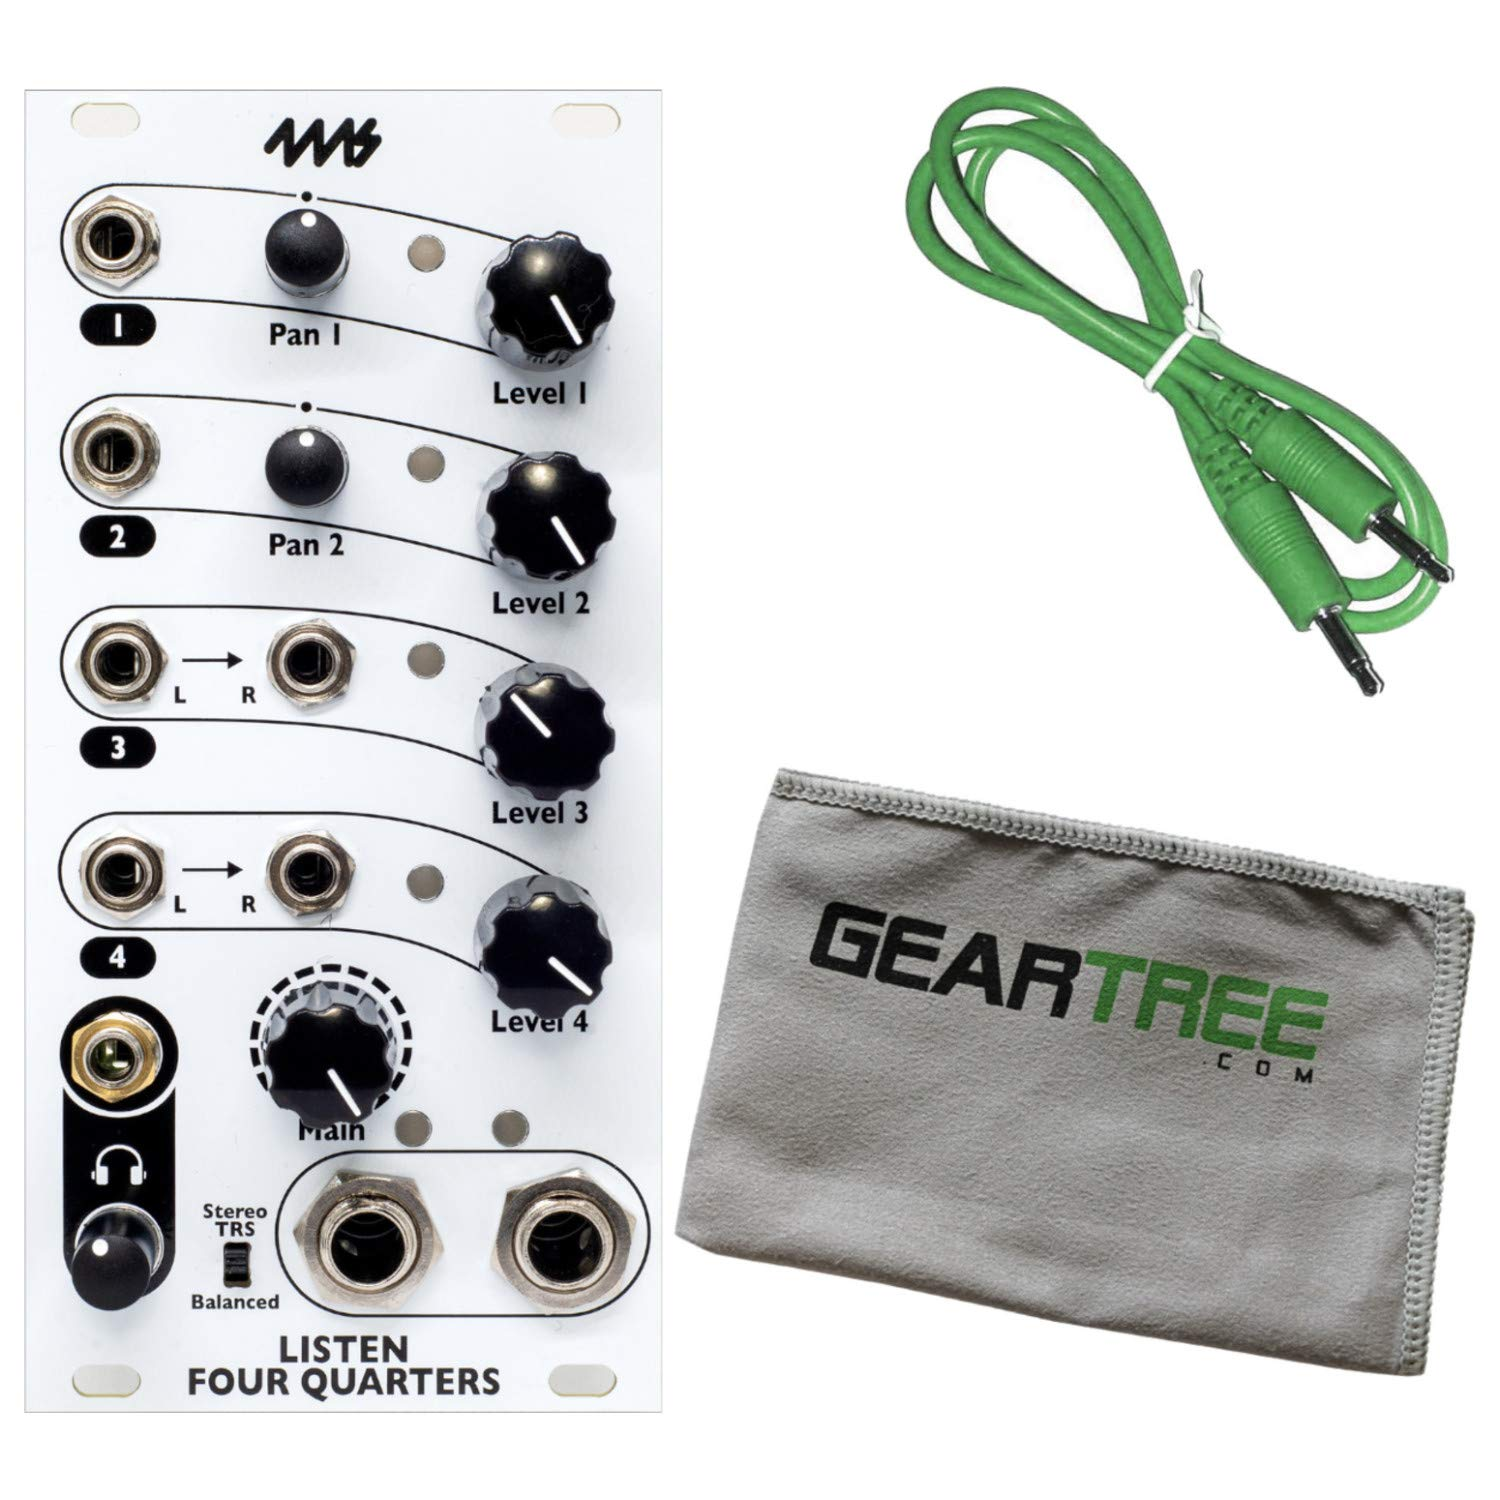 4MS L4Q Listen 4 Quarters Synth Module w/Geartree Cloth and Patch Cable